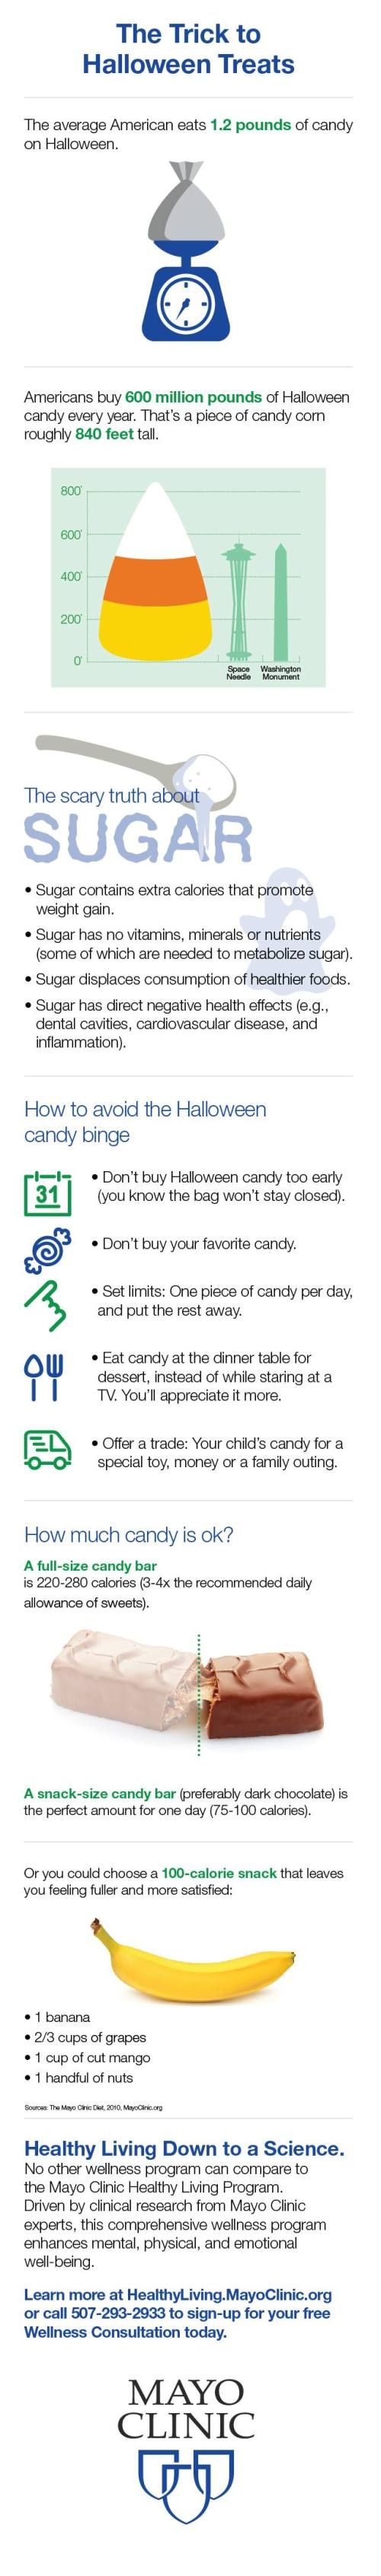 10_20_17_Halloween-Rerun_App_mobile_640wide_infographic.jpg